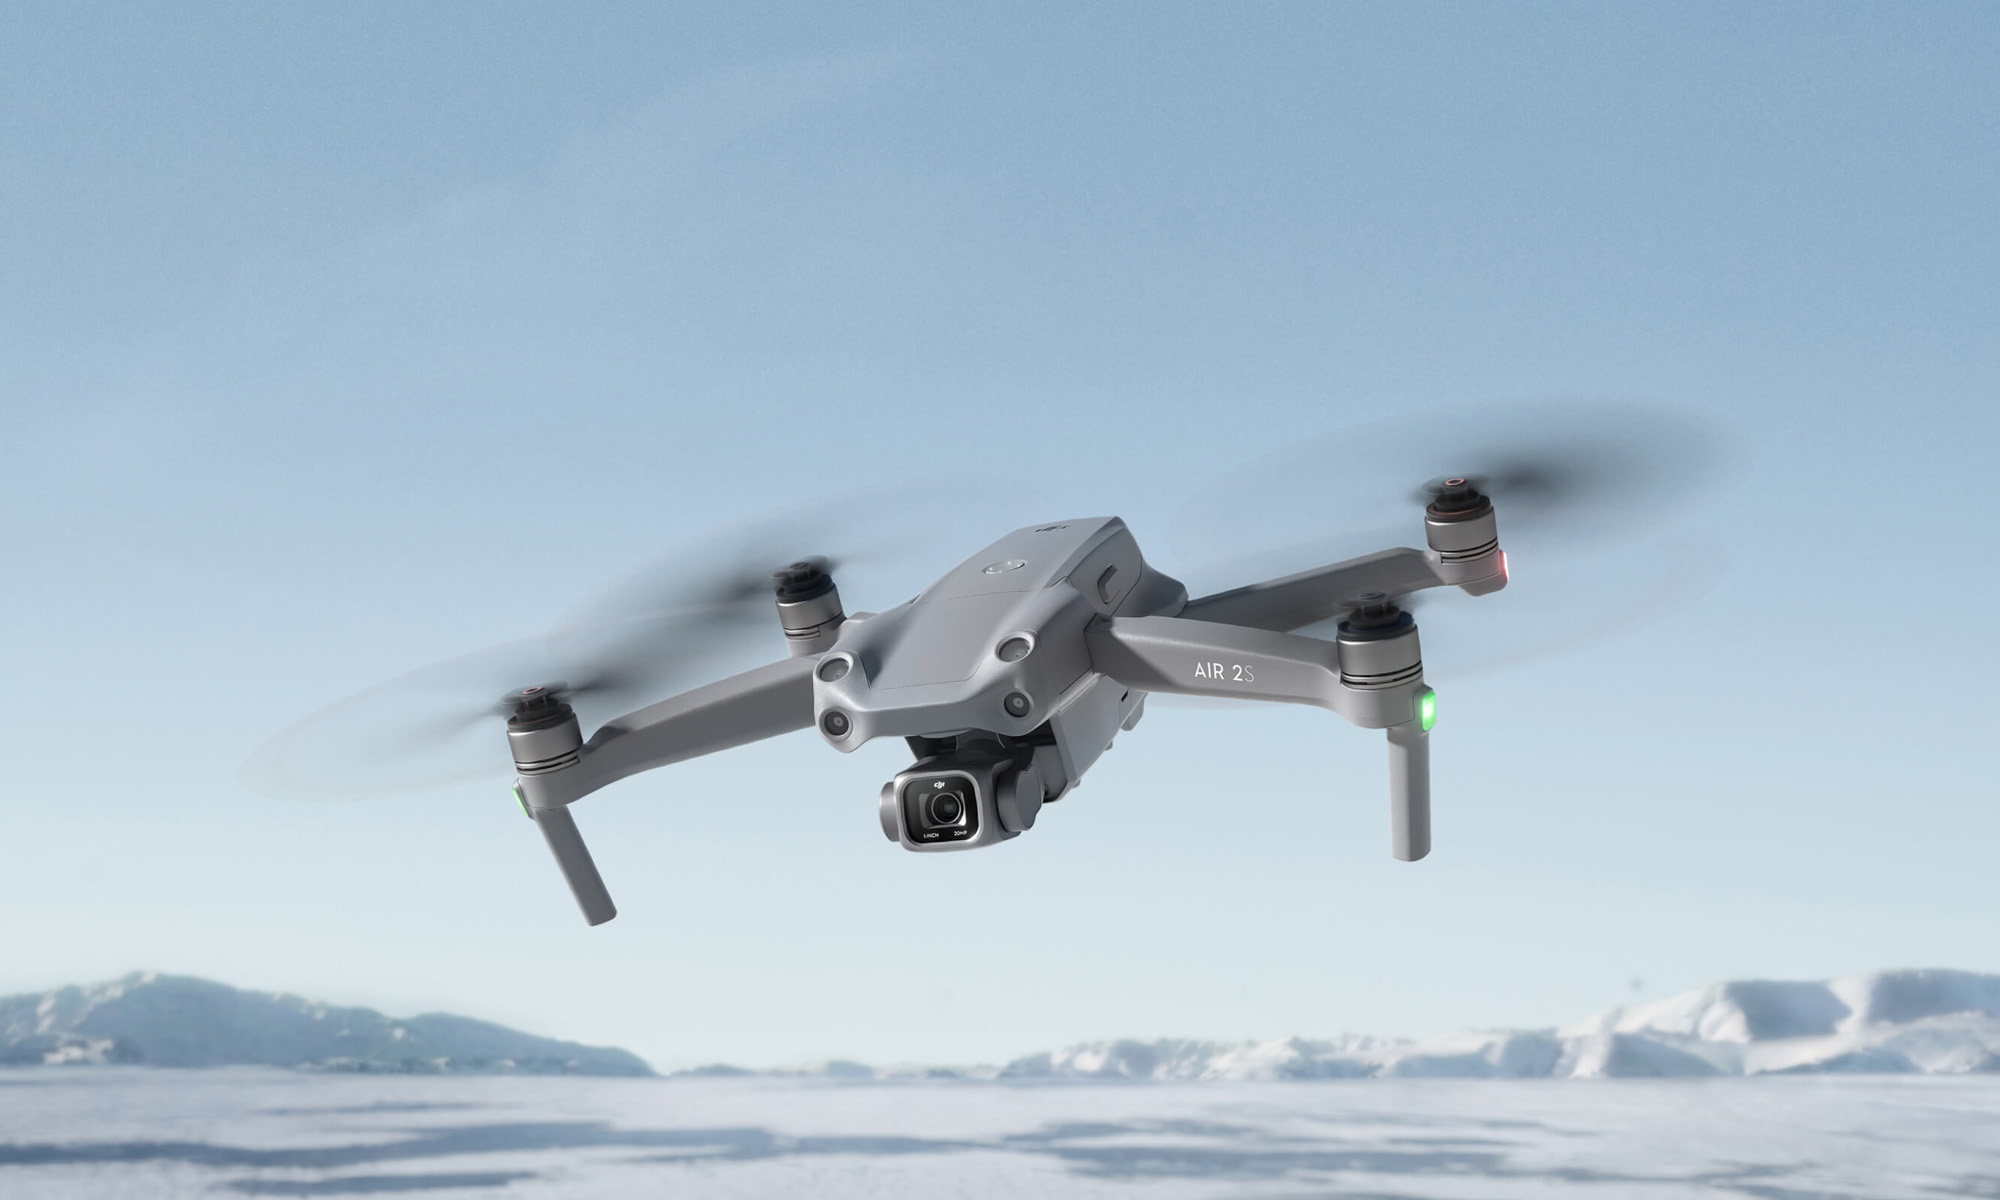 dji releases the new $999 air 2s drone